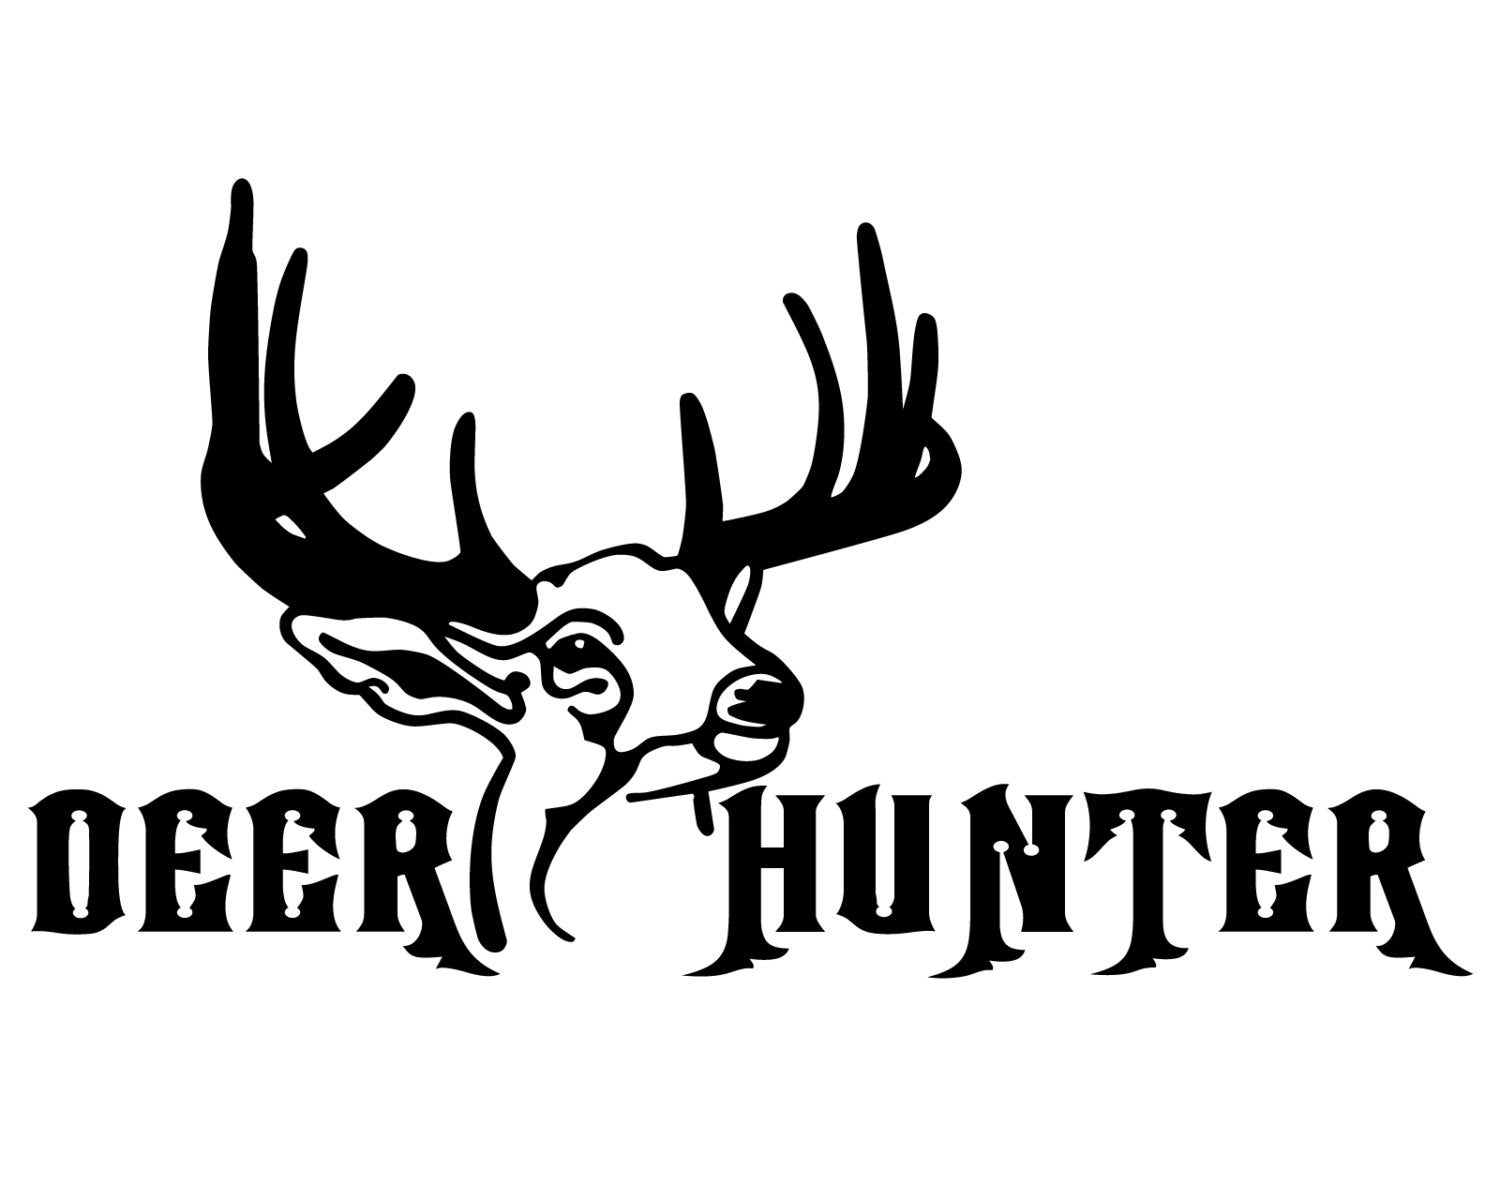 Deer hunter vinyl sticker deer hunting decal deer head silhouette